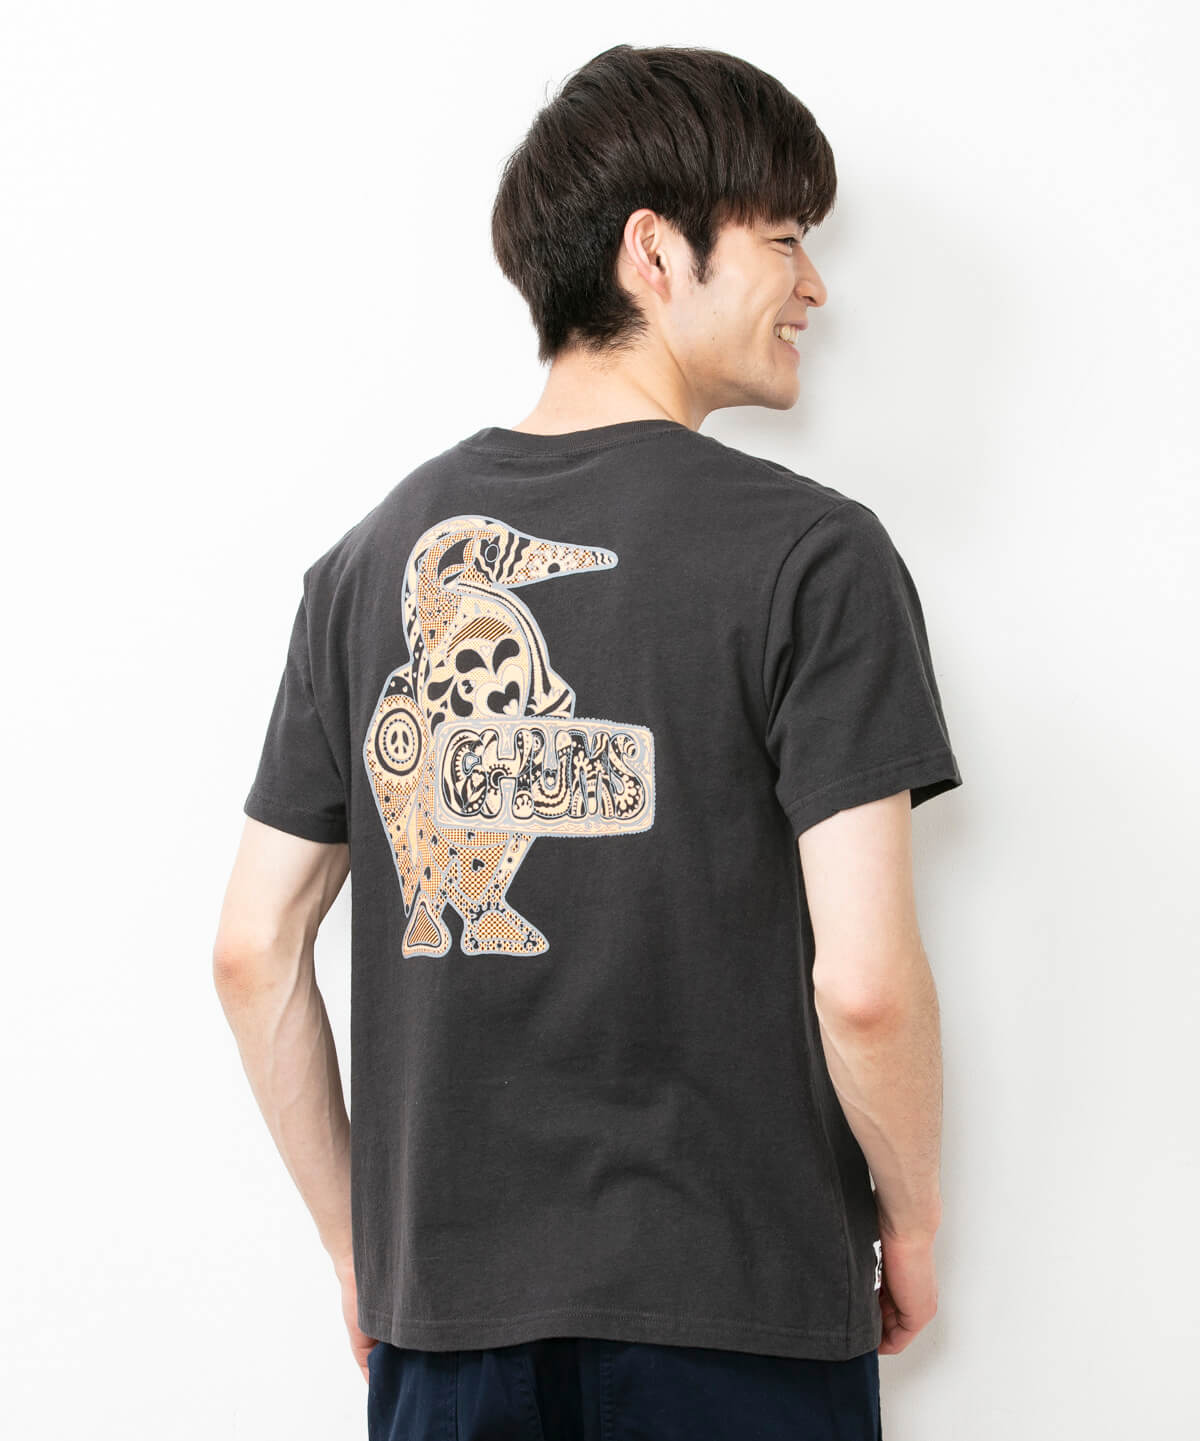 Psychedelic Booby T-Shirt(サイケデリックブービーTシャツ(トップス/Tシャツ))